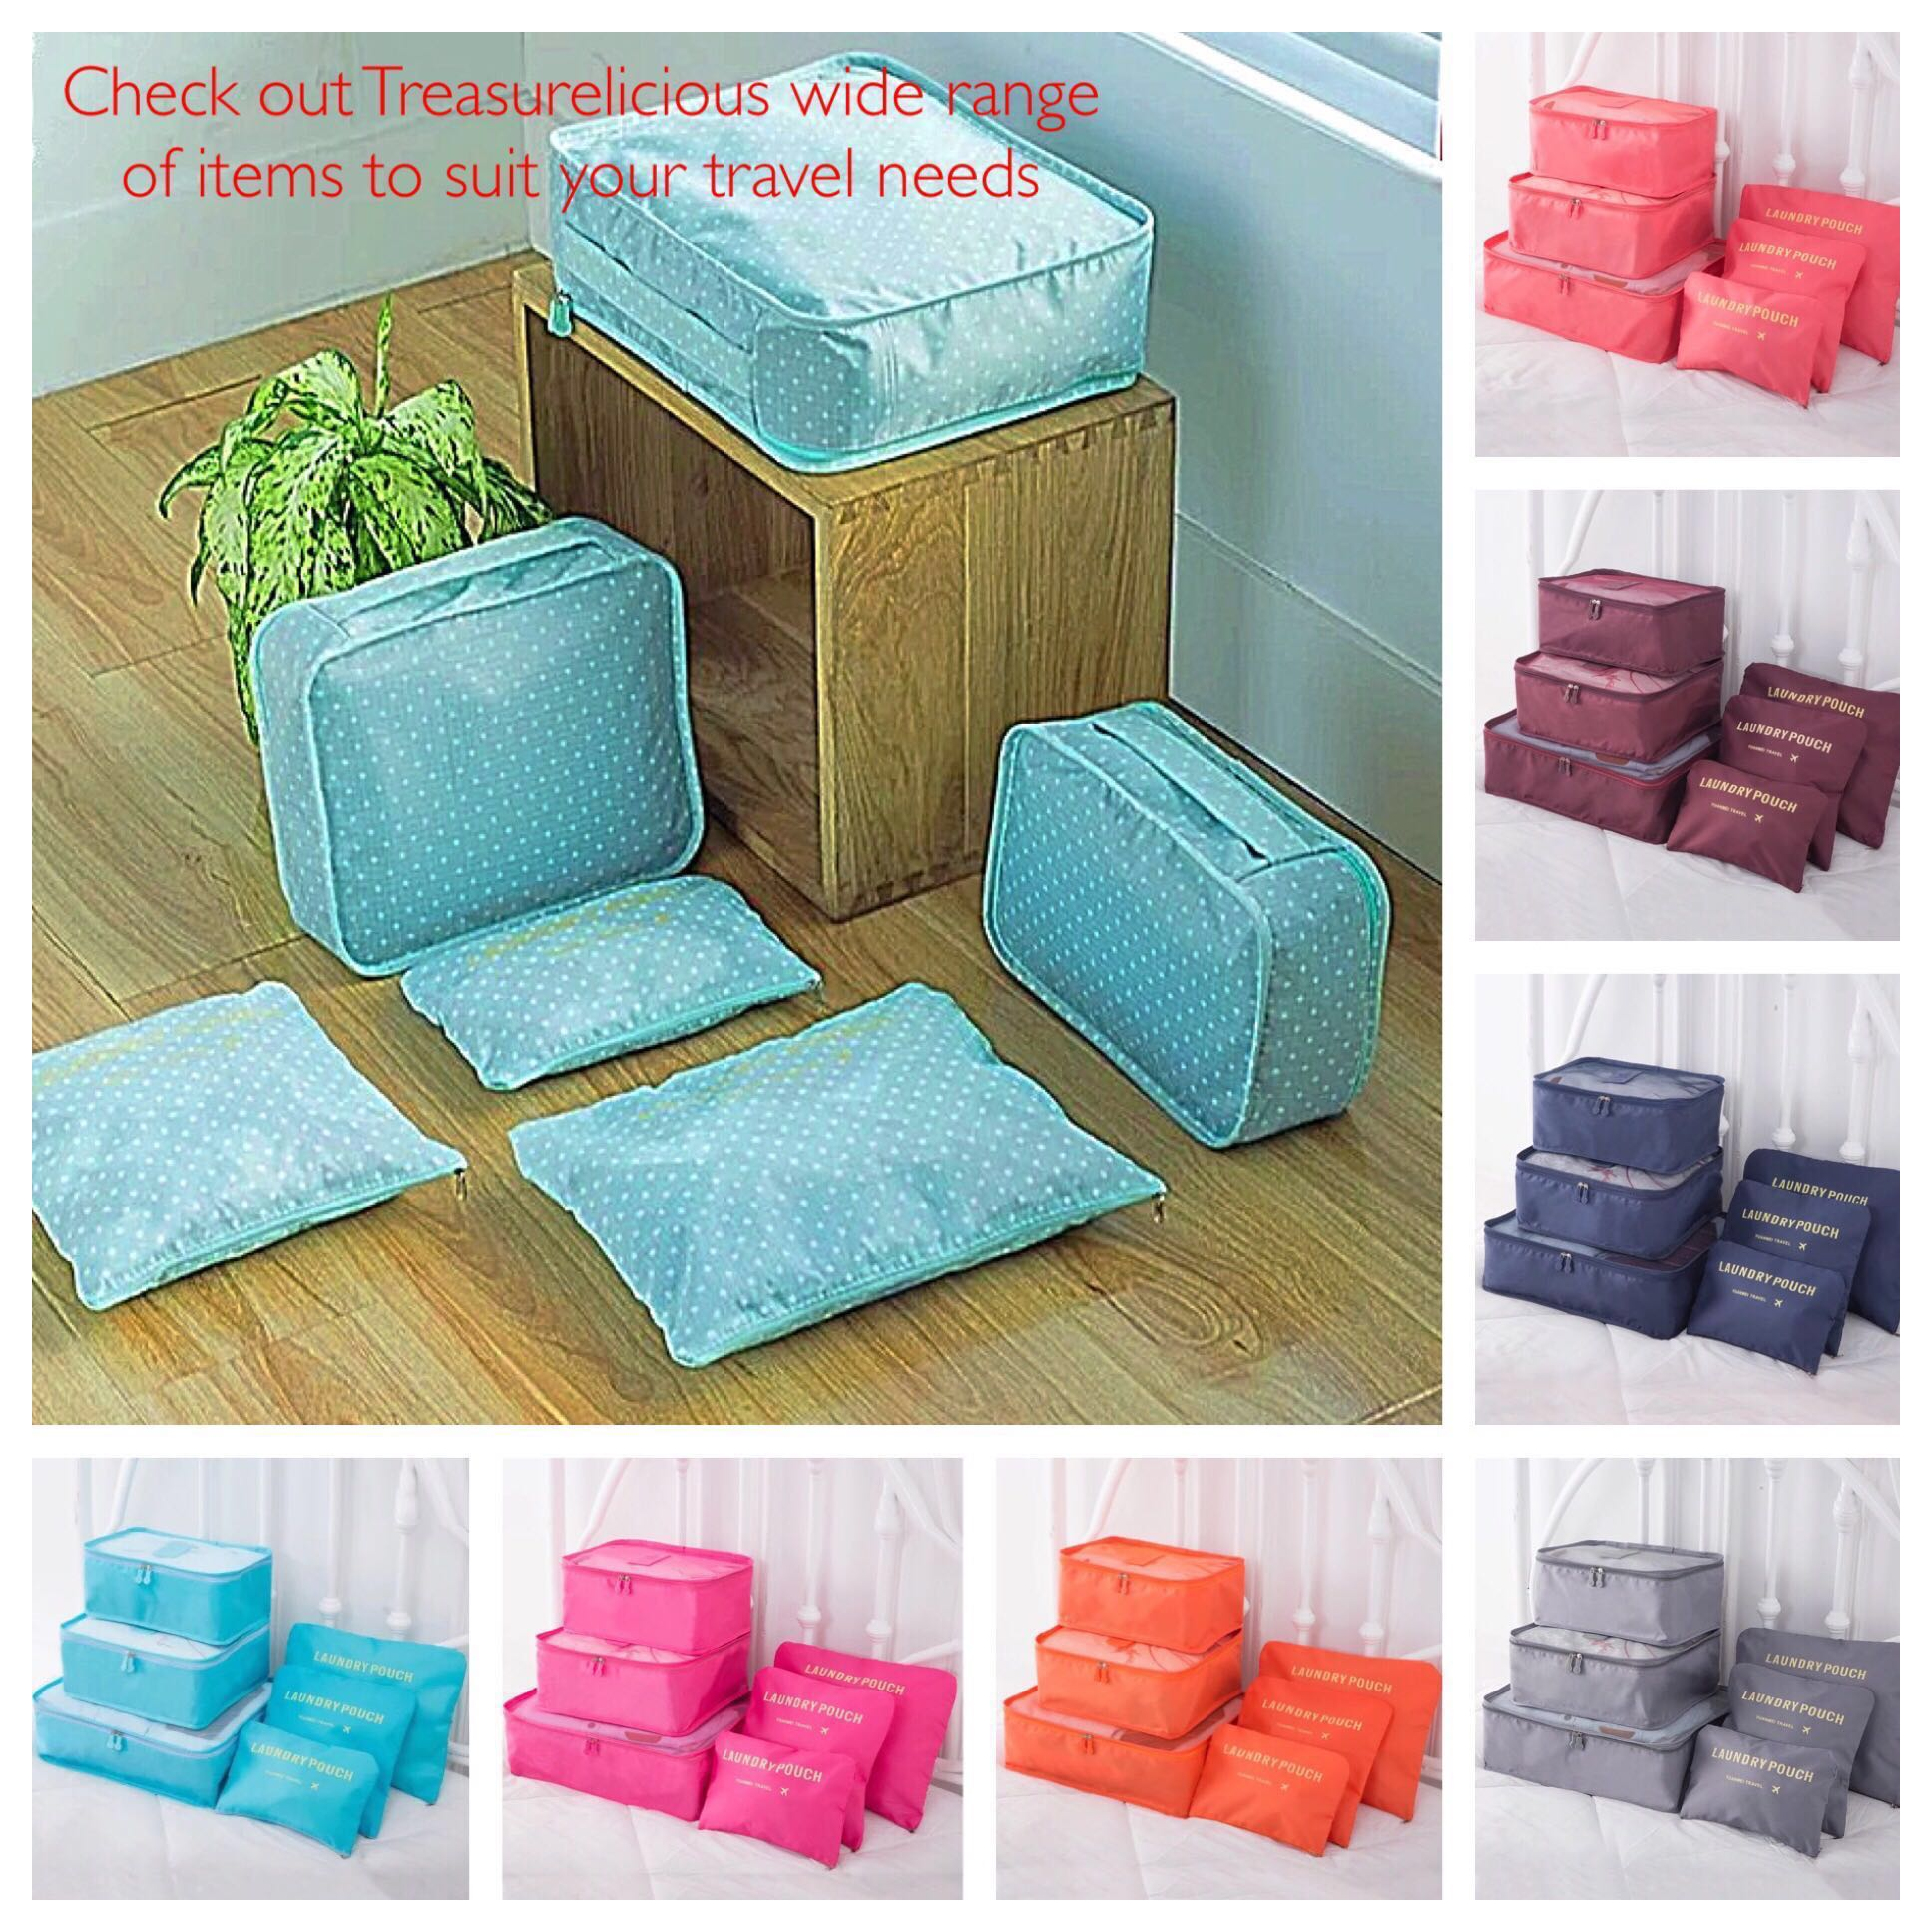 Travel Luggage Organiser Larkin Buy5 40 Luggage Organiser Camping Suitcase Baby Items Organizer Travel Leisure Cube Packing Cube Pouch Group Buy Bulk Purchase